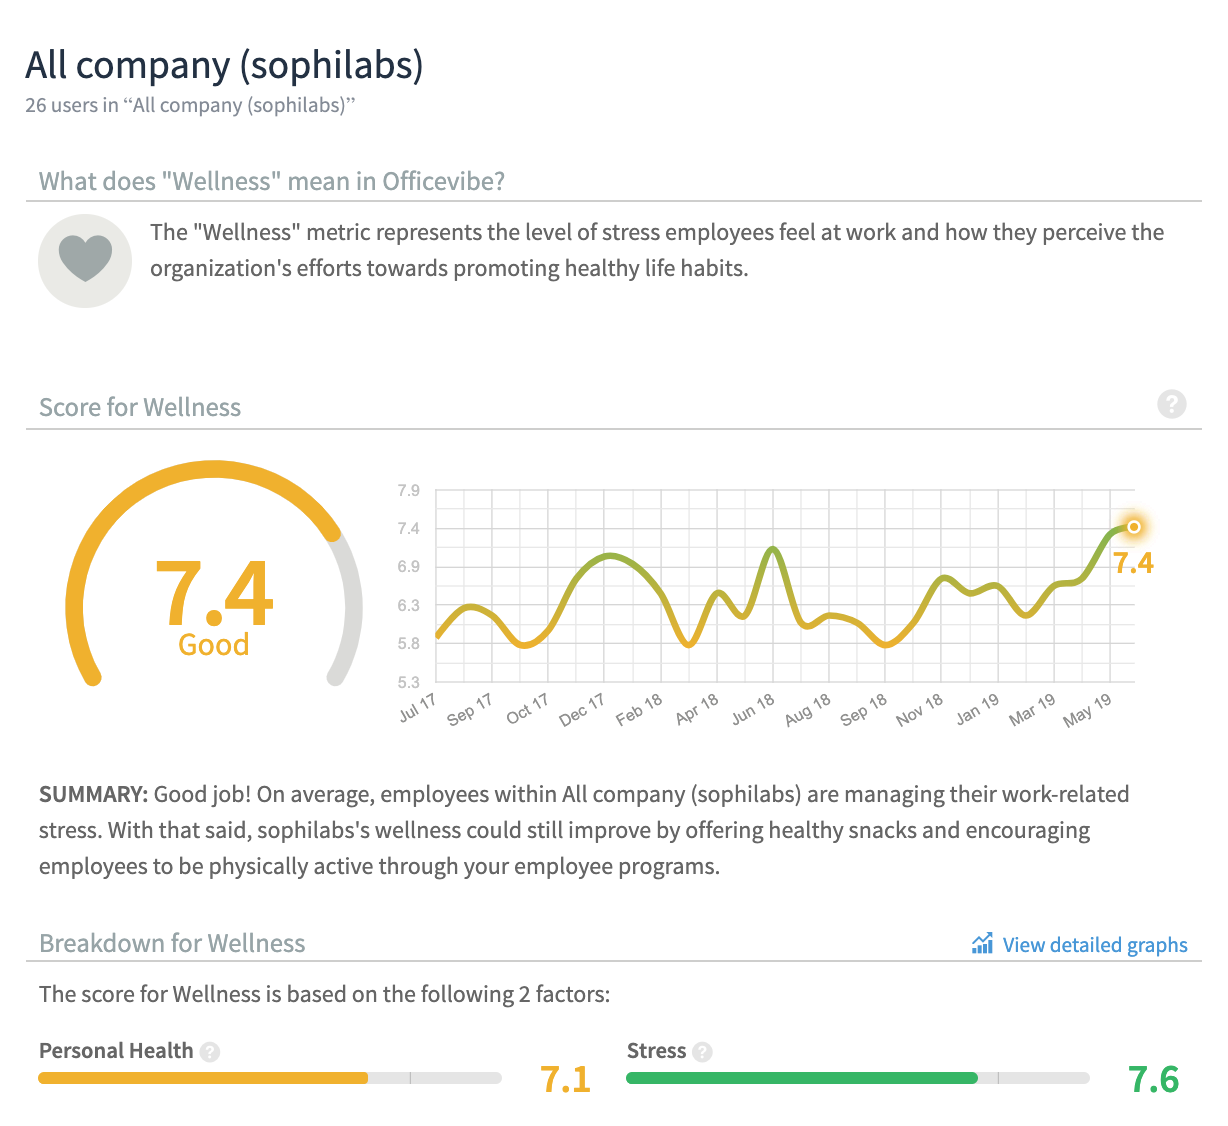 Our current Officevibe report on wellness at sophilabs.